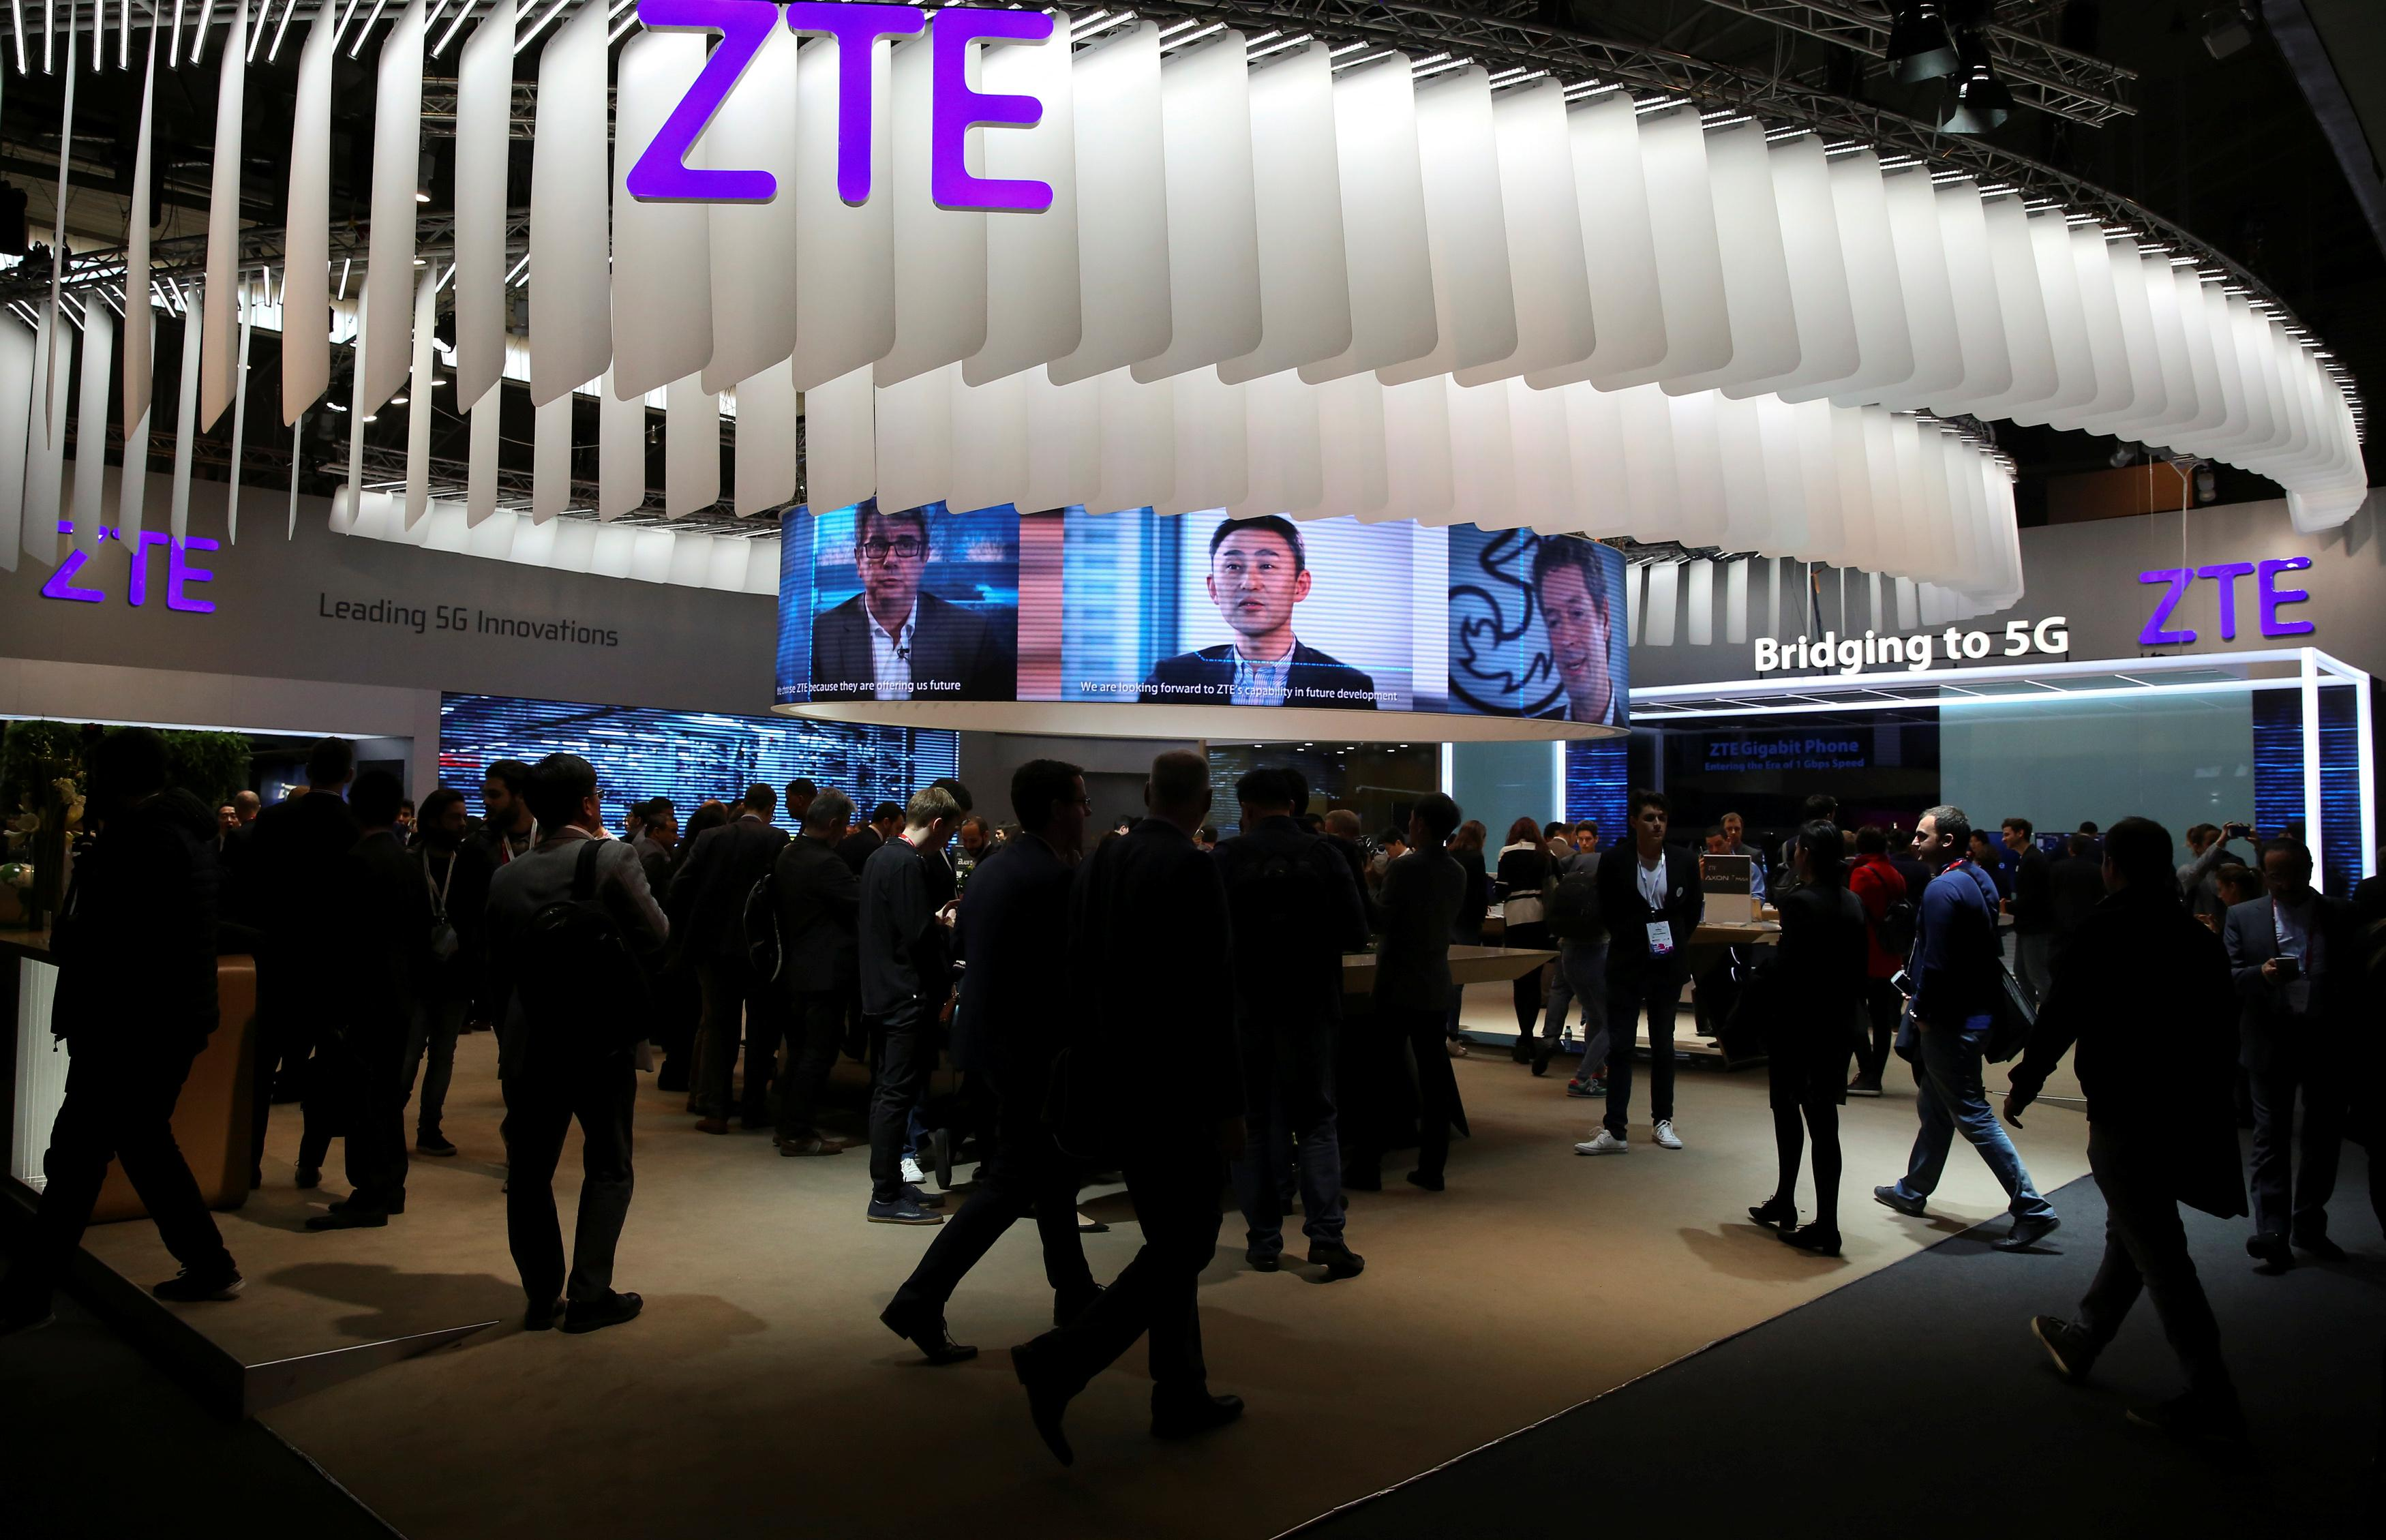 ZTE Halts Operations, How Will This Impact Telstra?